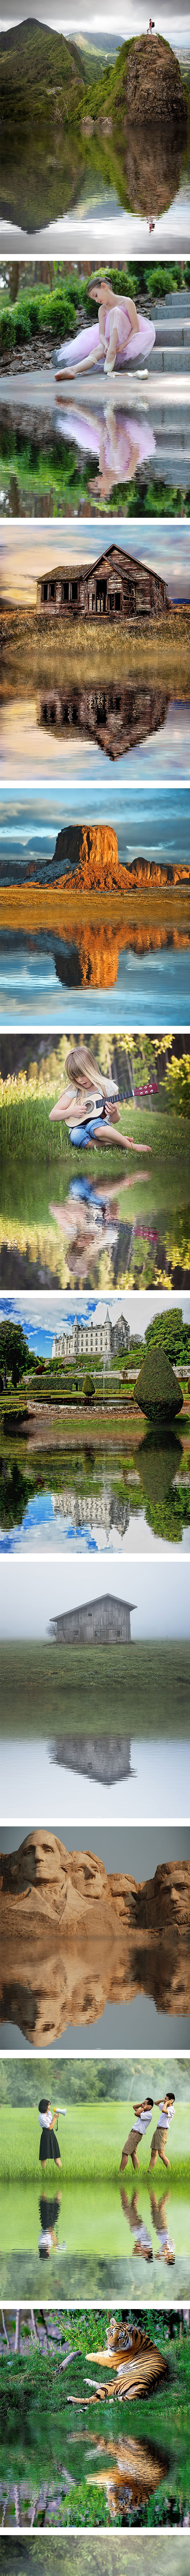 Water Reflection Photoshop Action - Photo Effects Actions